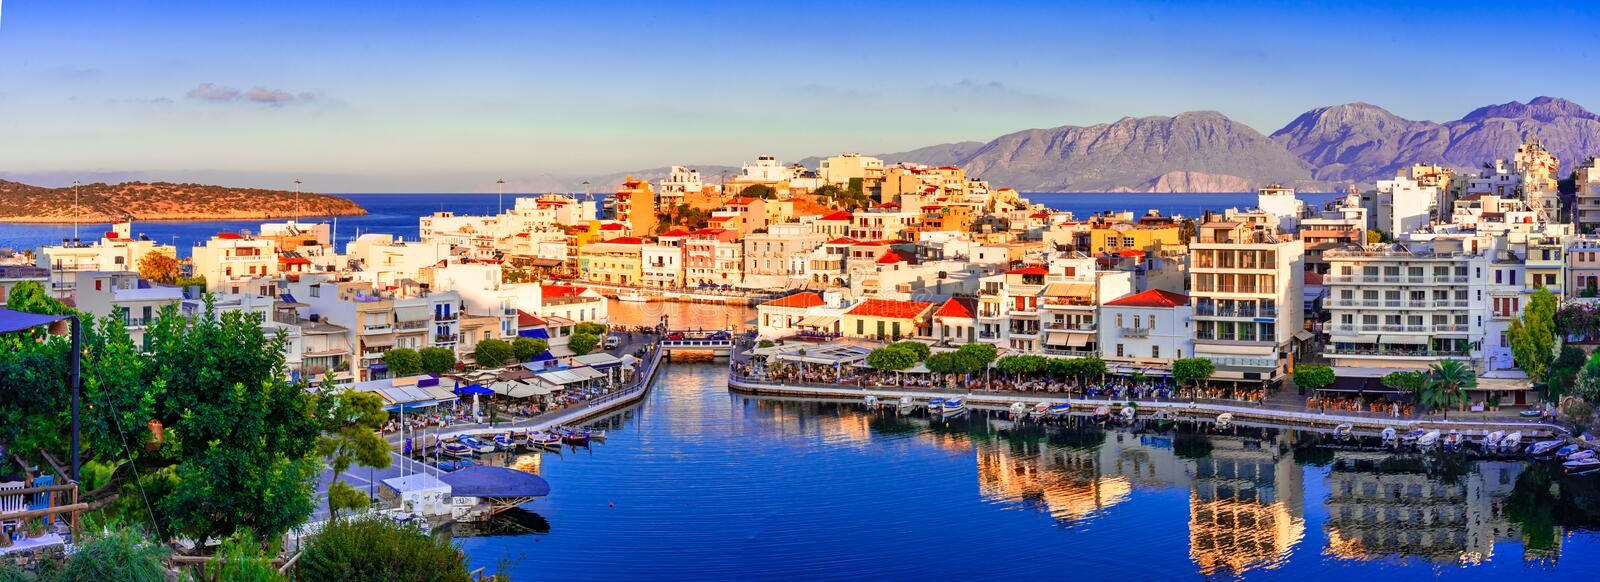 Agios Nikolaos, Crete, Greece: Sunset view of Agios Nikolaos over Voulismeni Lake, a picturesque town in the eastern part of the royalty free stock photography